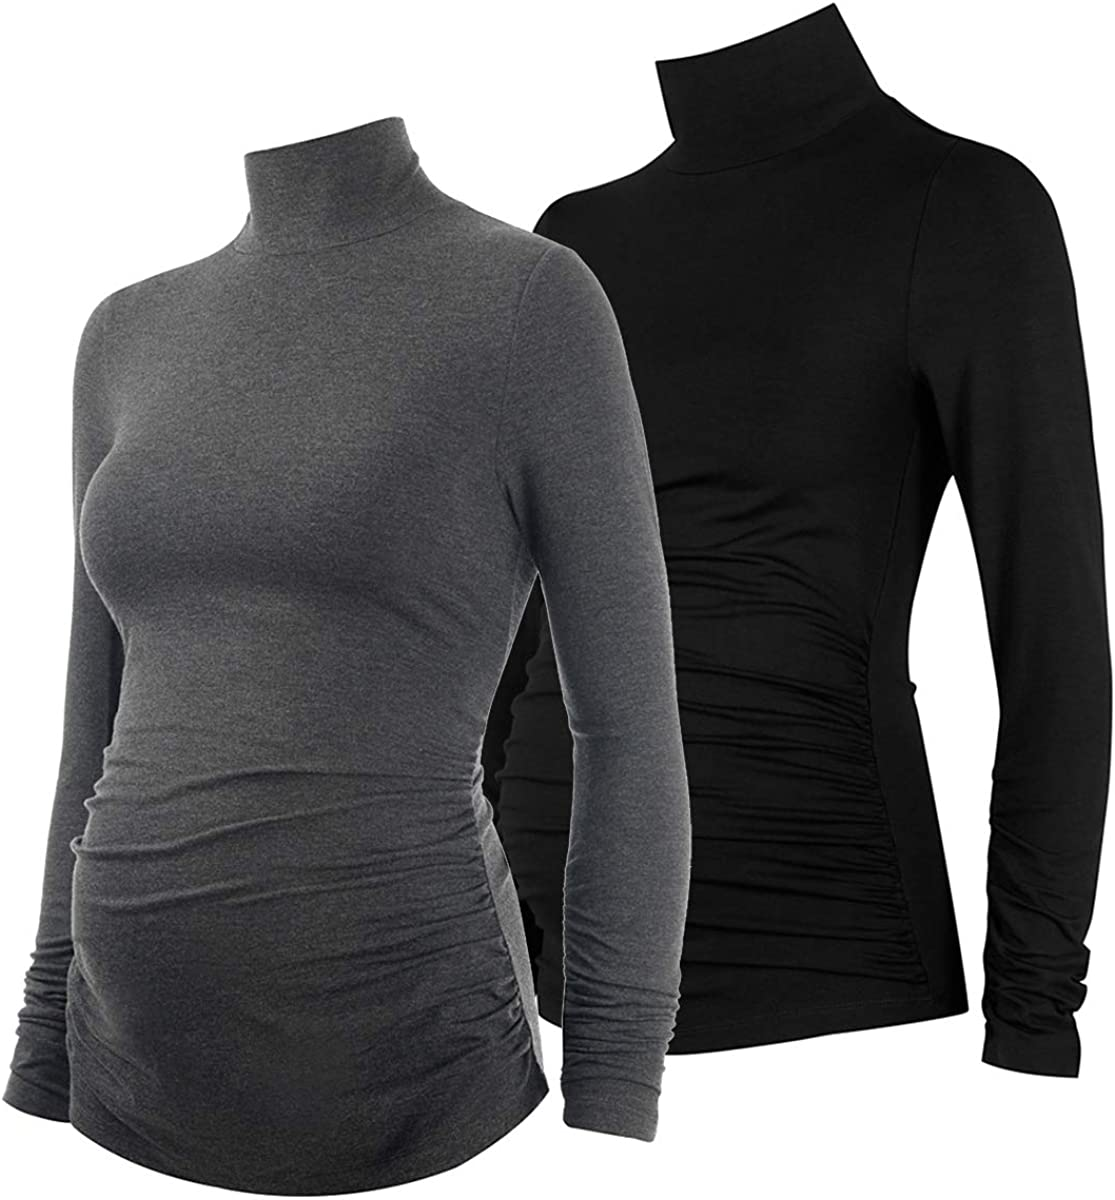 Women Maternity Tops Side Runched Long Sleeve Mock Collar Tunic Winter Maternity Shirts